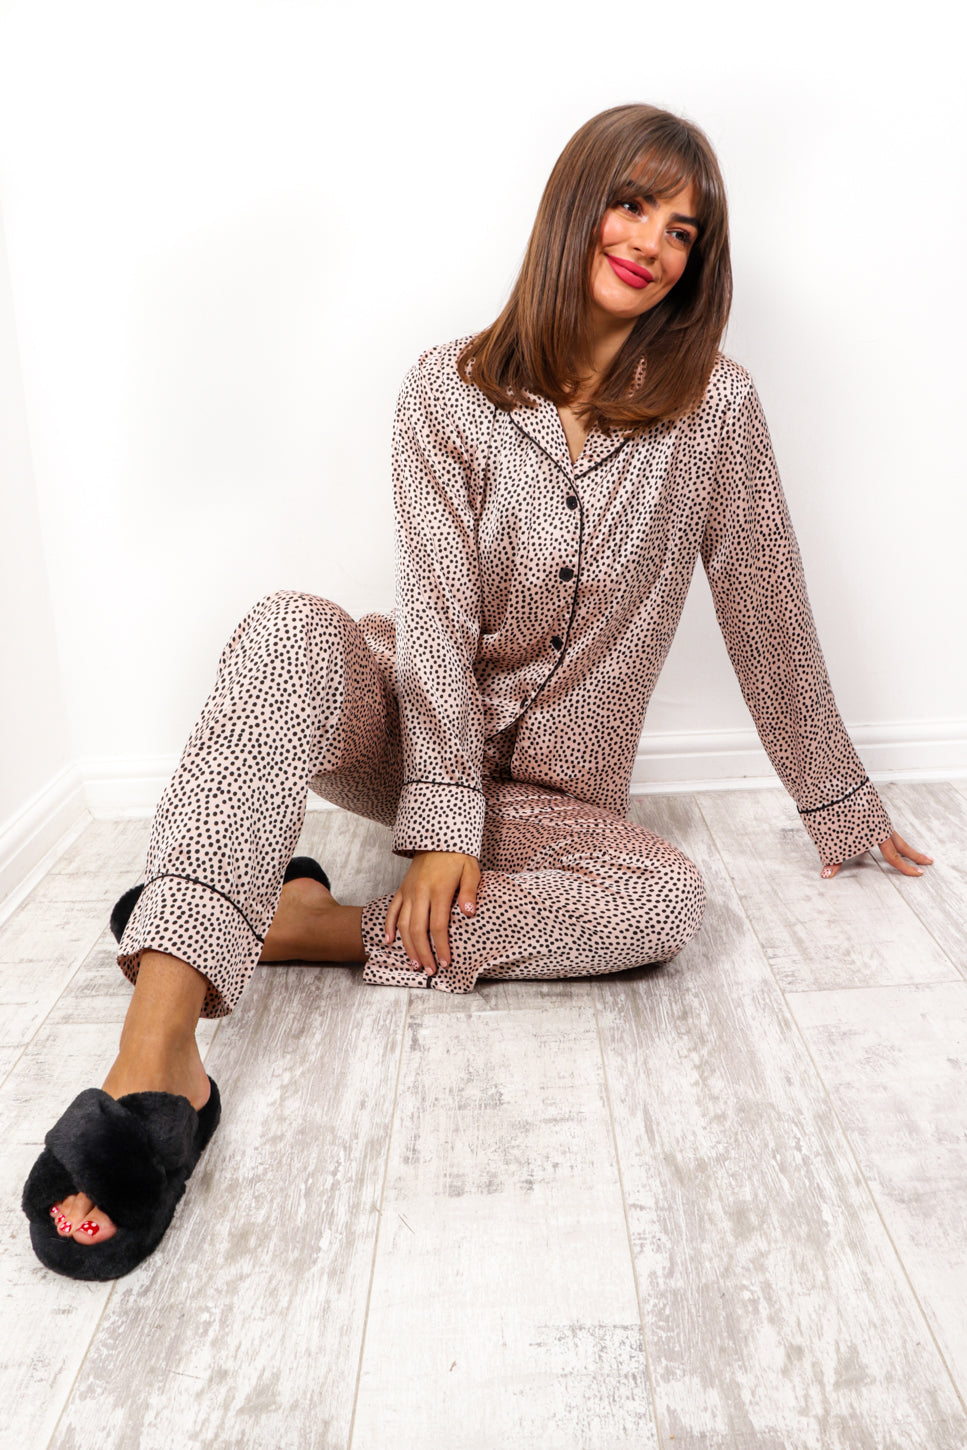 Snooze Button - Blush Polka Dot Pyjama Set